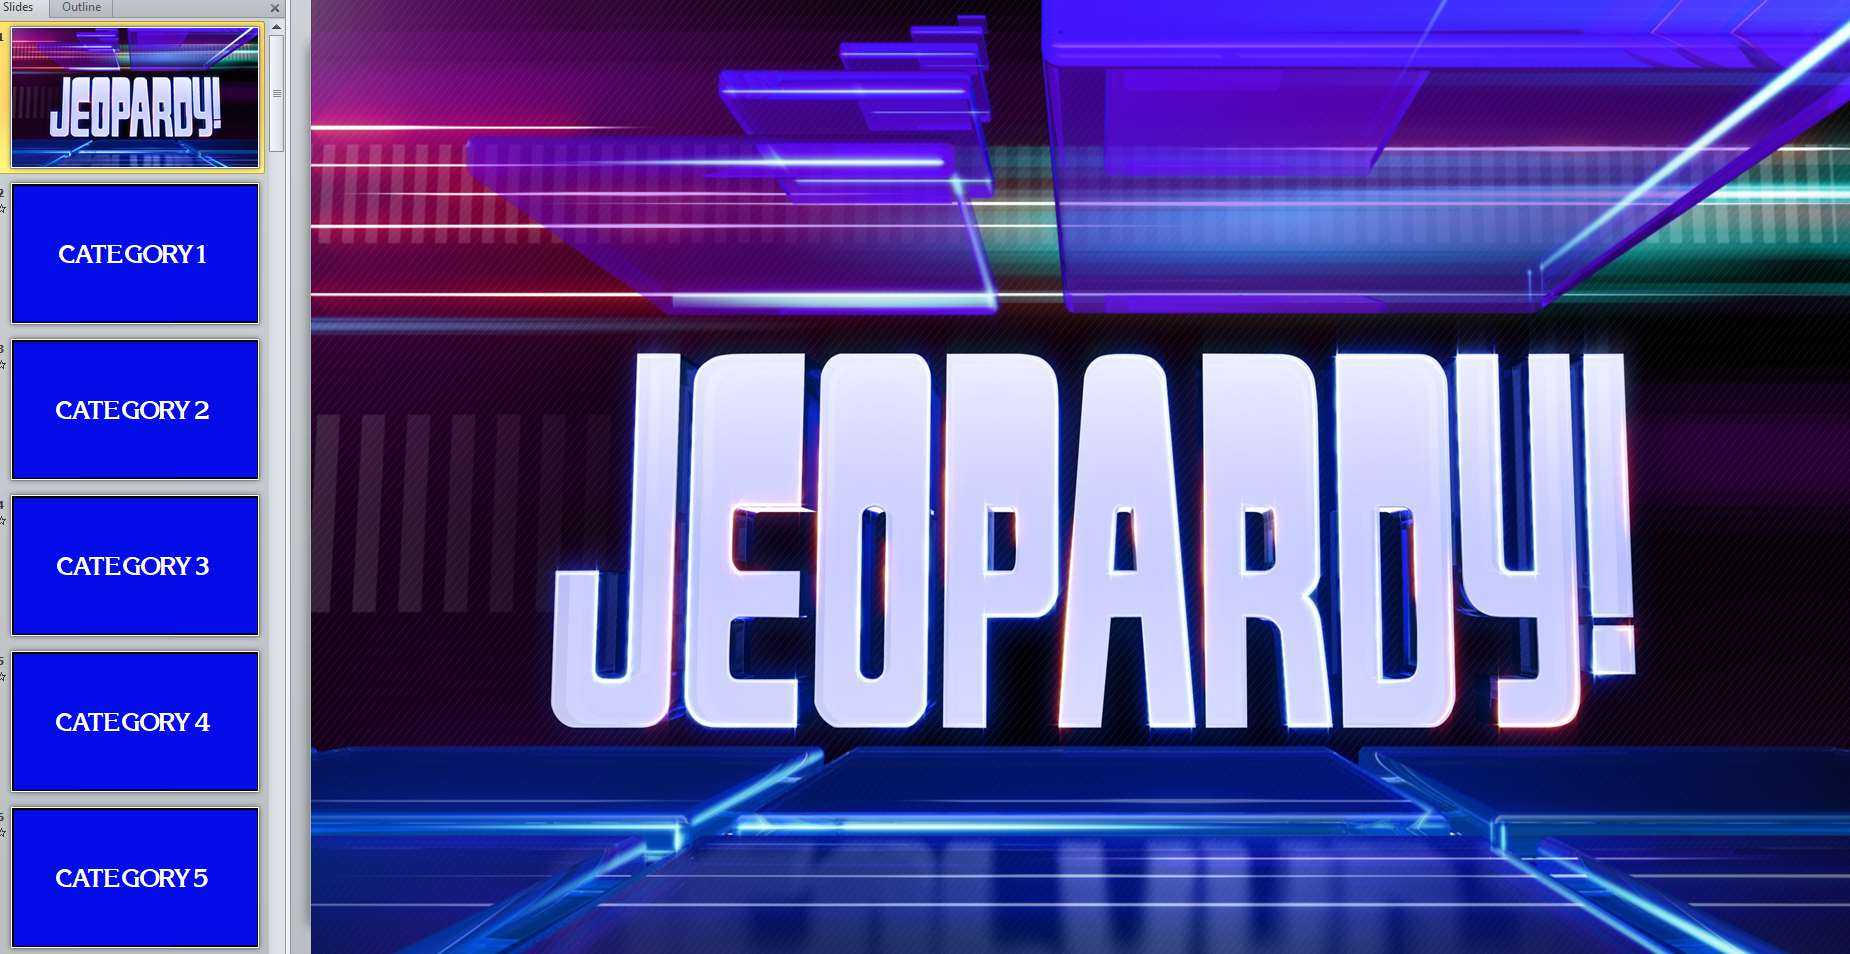 005 Jeopardy Powerpoint Template With Score Jeopardy2 With Jeopardy Powerpoint Template With Sound